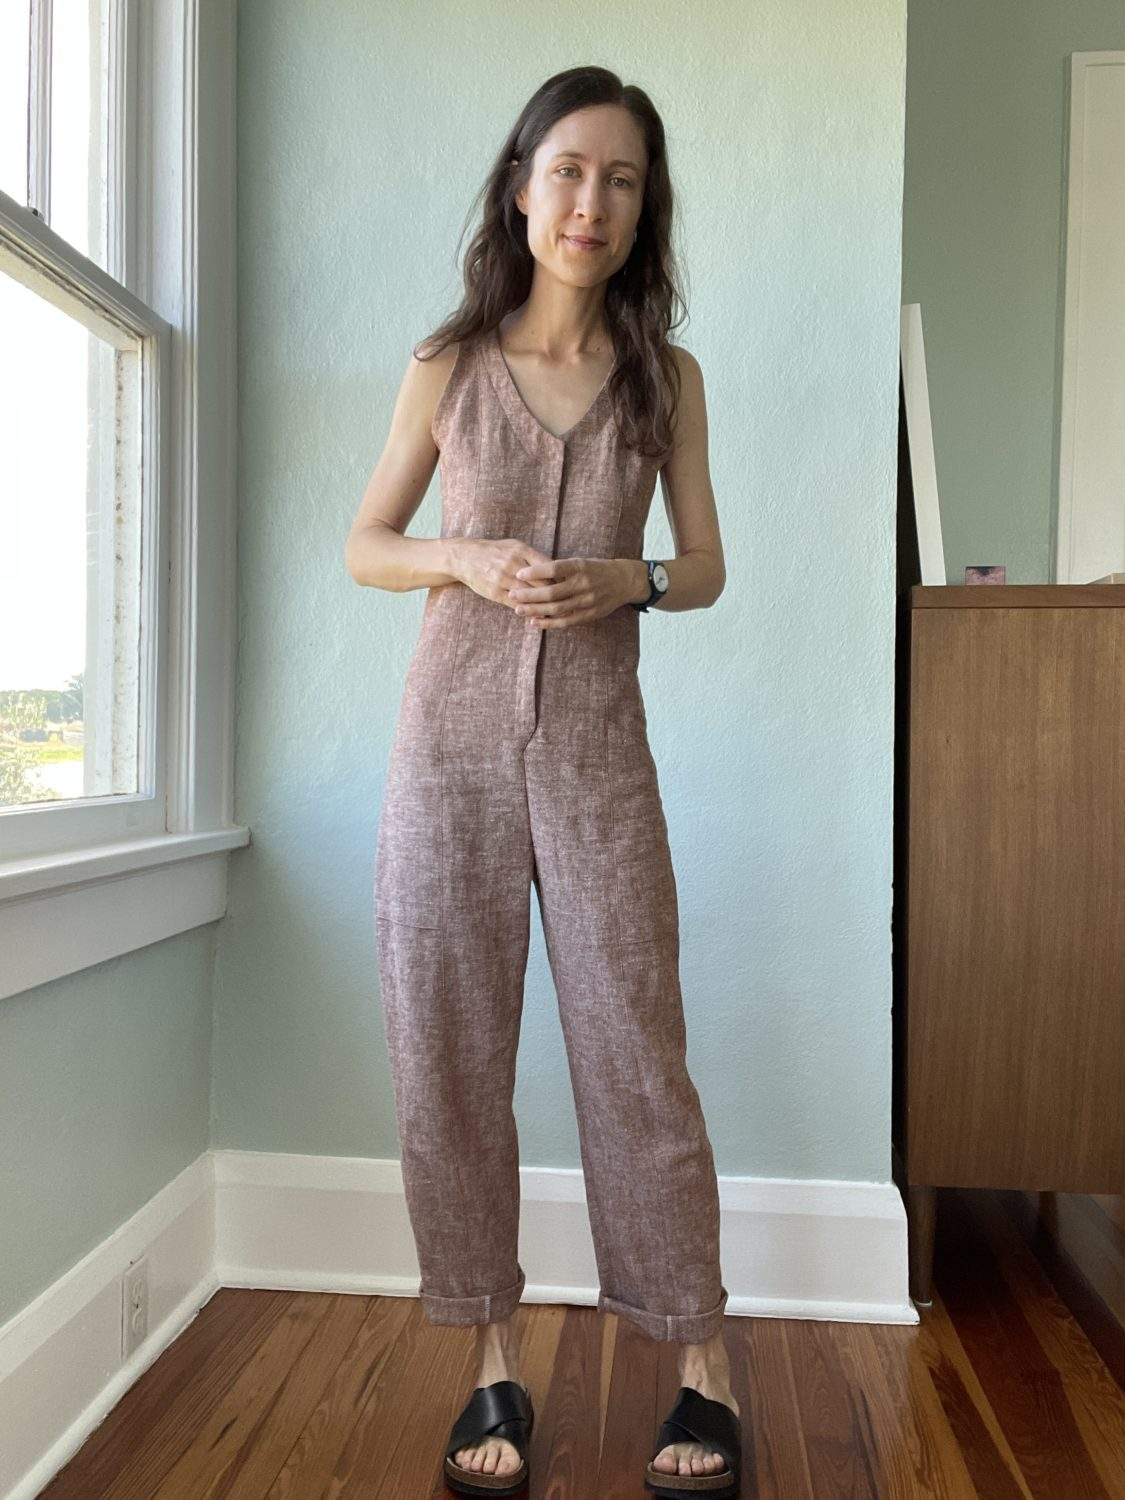 Rory Jumpsuit in Brussels Washer linen